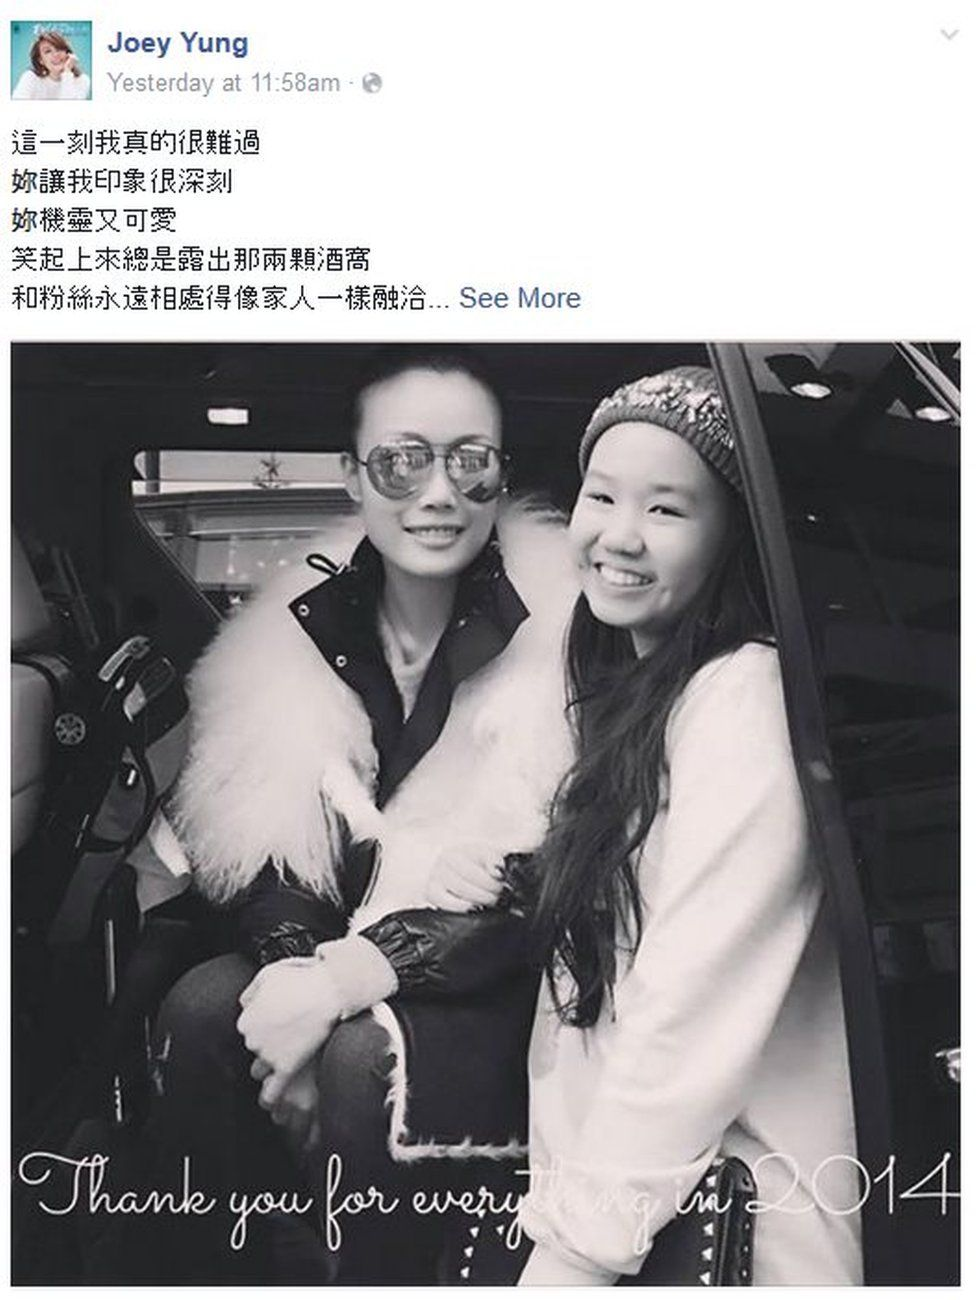 Screenshot of Cantopop singer Joey Yung's Facebook page on 19 August 2015